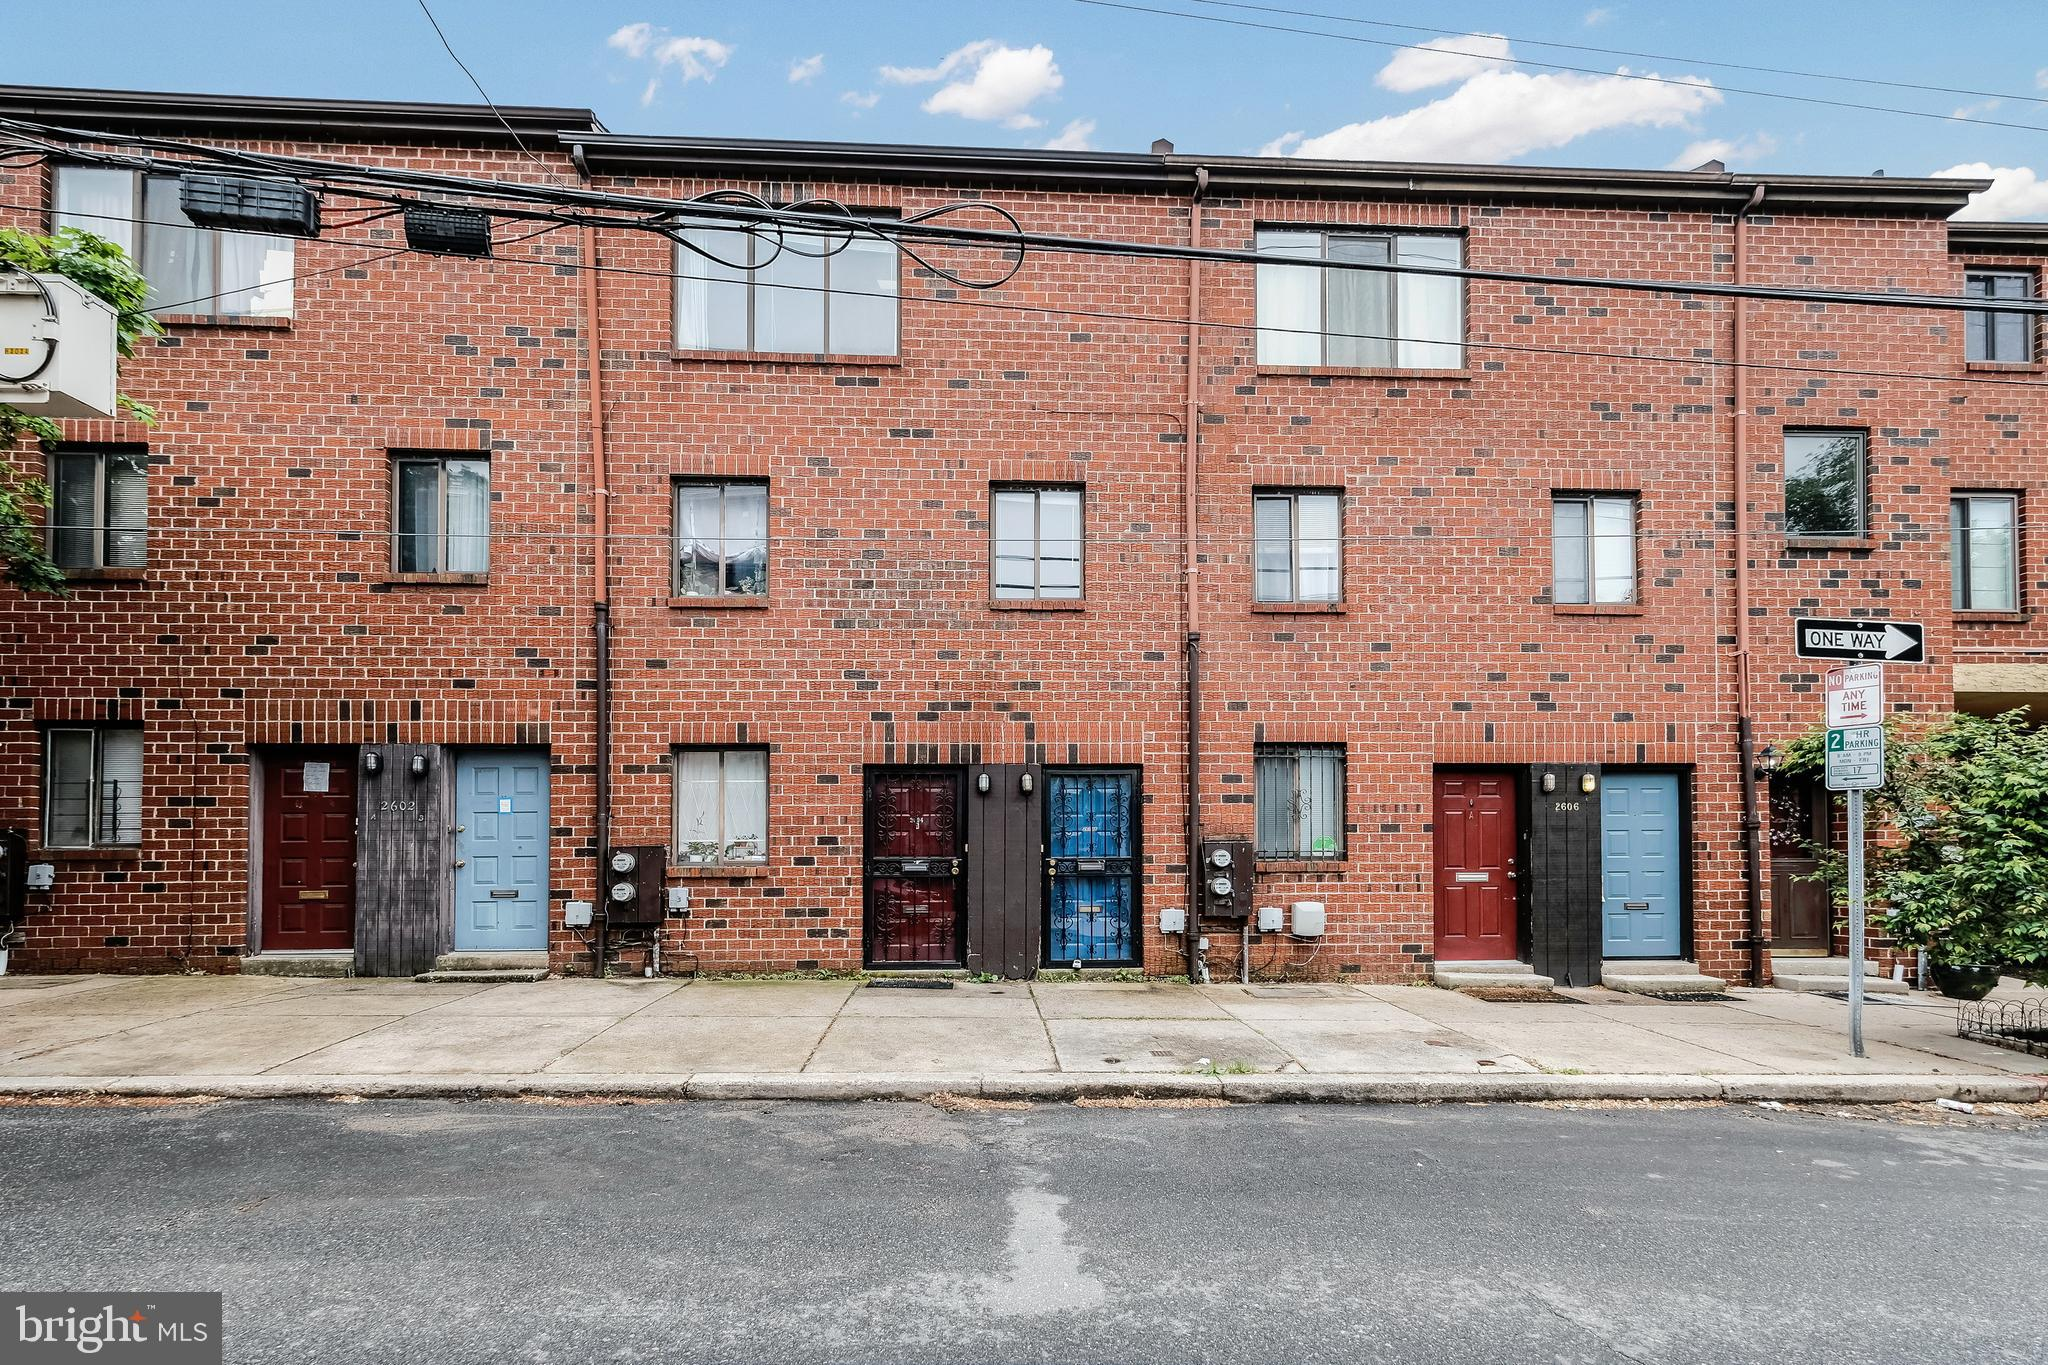 Fabulous DUPLEX with 1CAR parking in the heart of Fairmount. First  floor is a gracious 2 bedroom, current rent is $1700/ mo. Second floor consists of a light filled spacious and gracious 1 bedroom apartment, whose market rent, including parking is $1600/ mo Both units are self contained! Great investment opportunity,  and or owner occupant situation.  Located just minutes from Kelley Drive, The Philadelphia Art Museum, Wholefoods Market,  Penn and Chop.